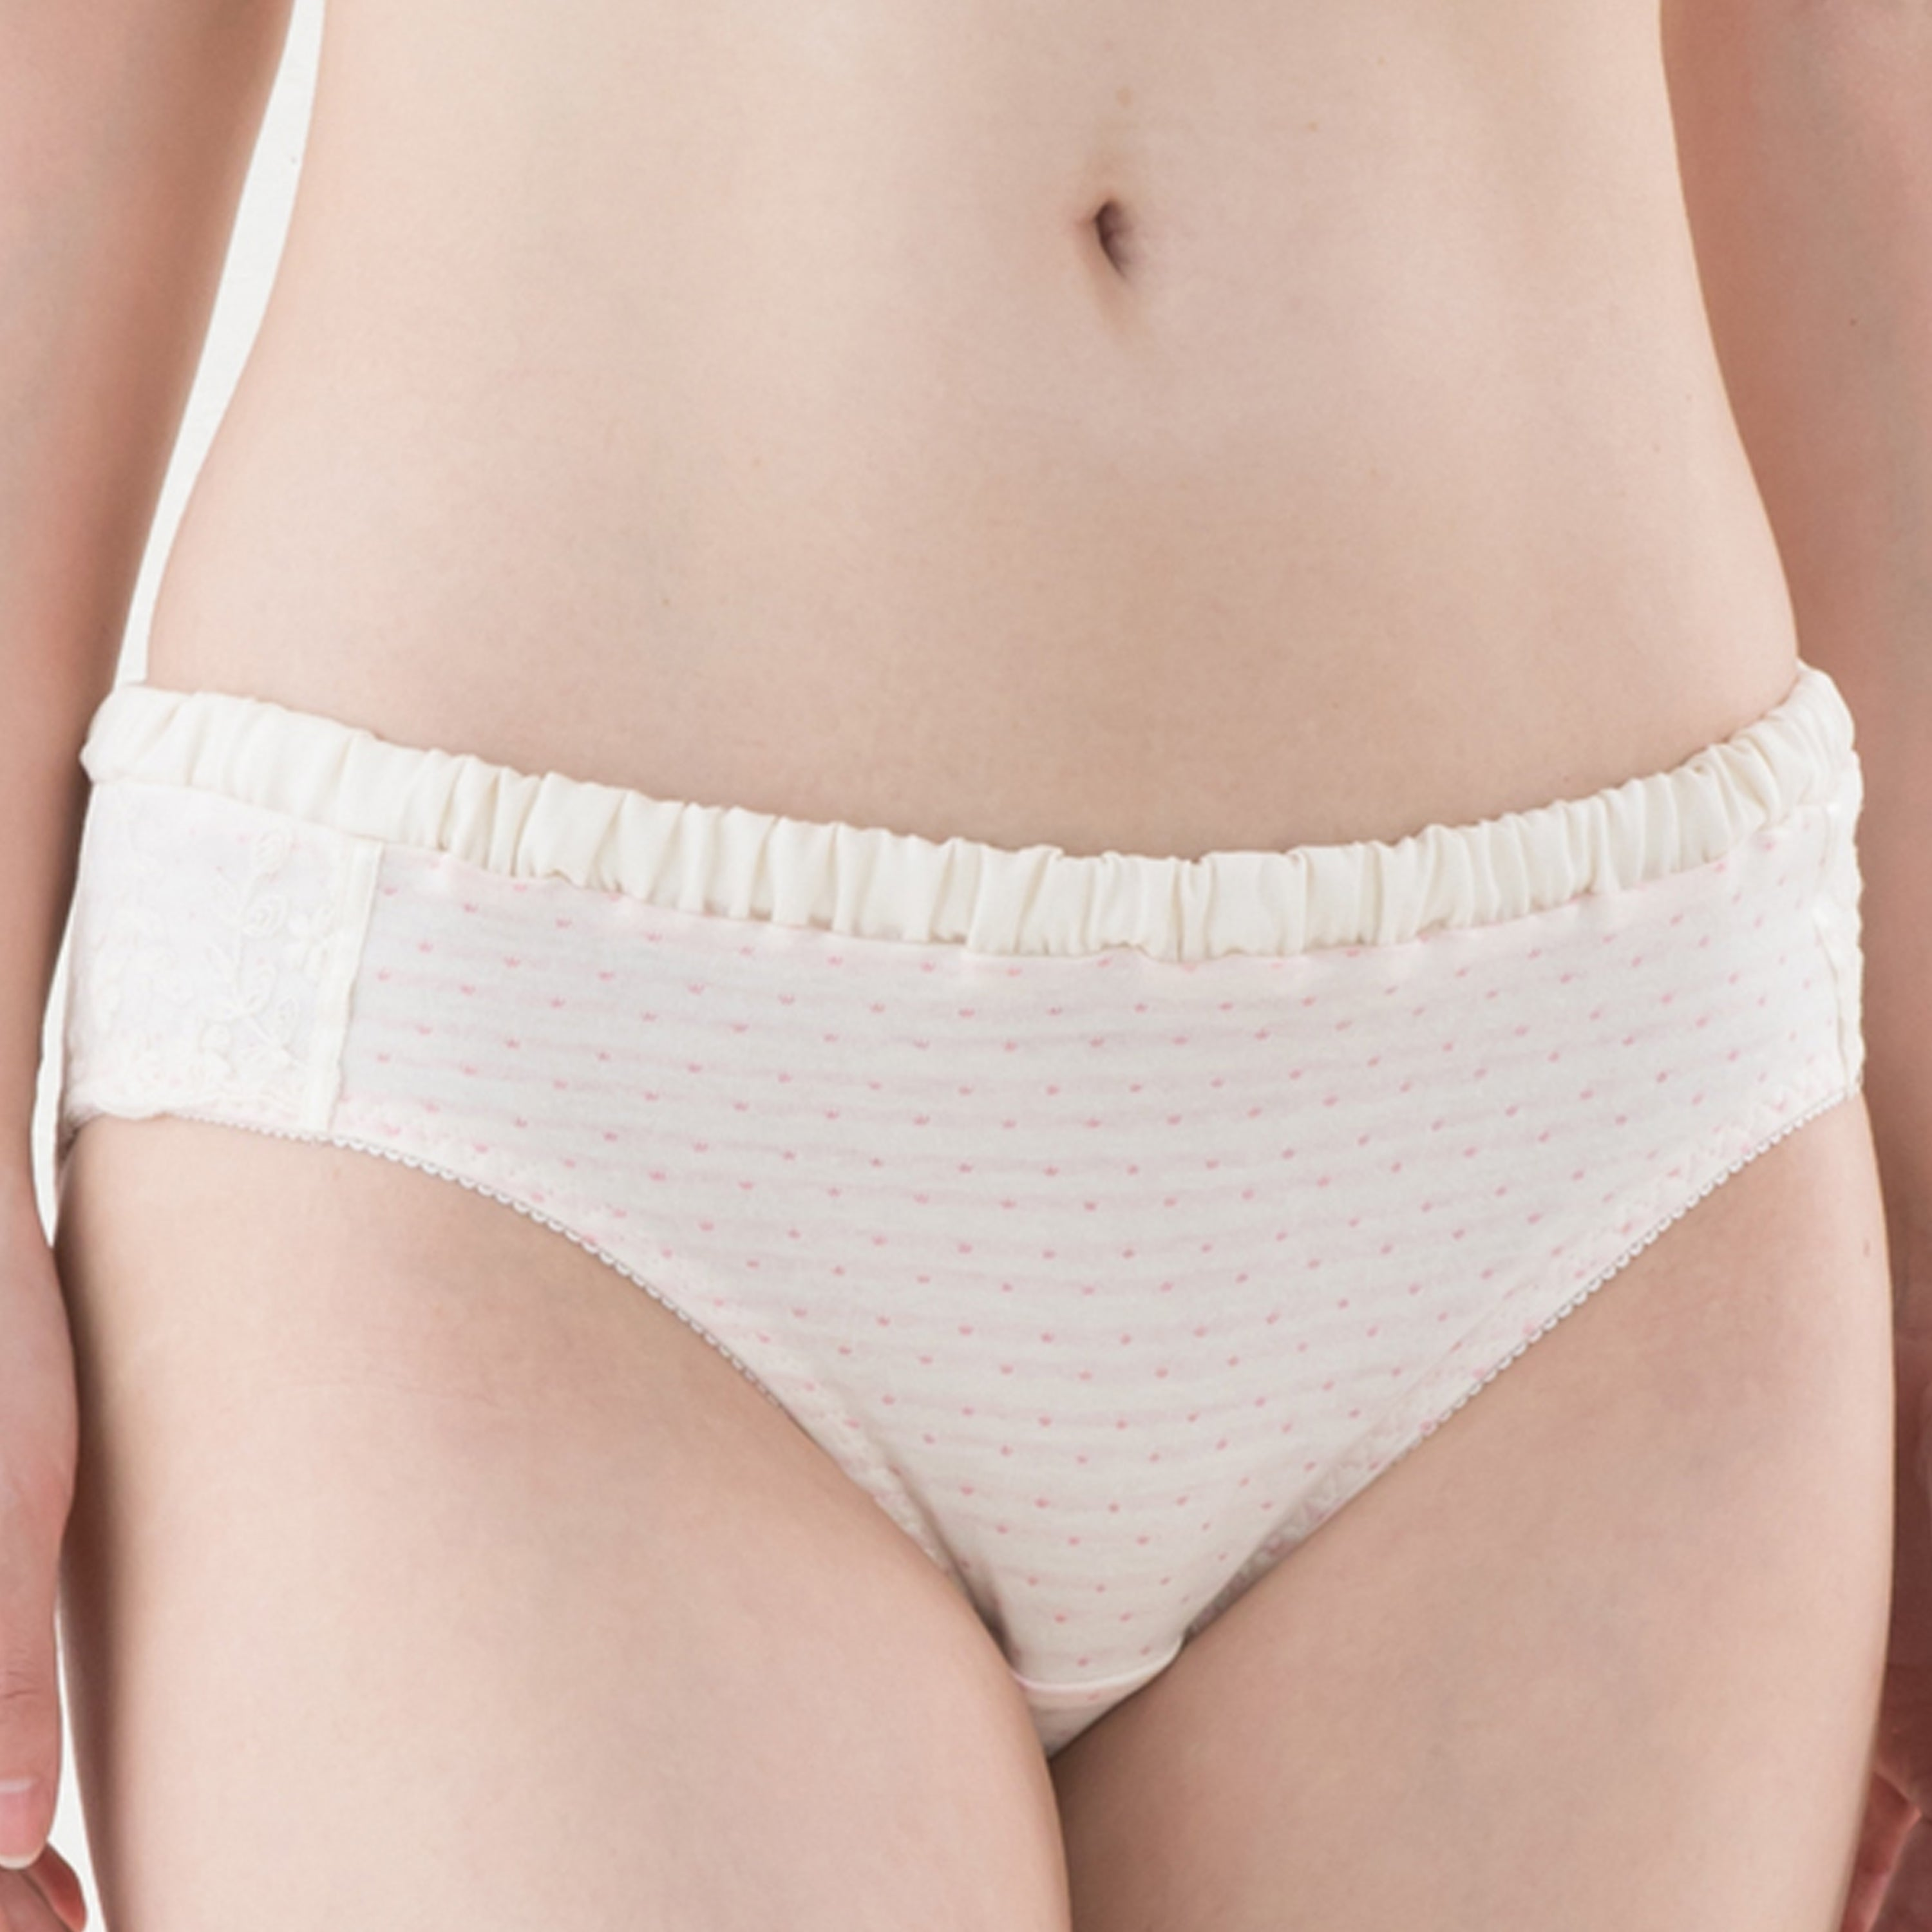 [MADE IN JAPAN] Maternity and Post-Partum 100% Organic Cotton Floral Lace Panties